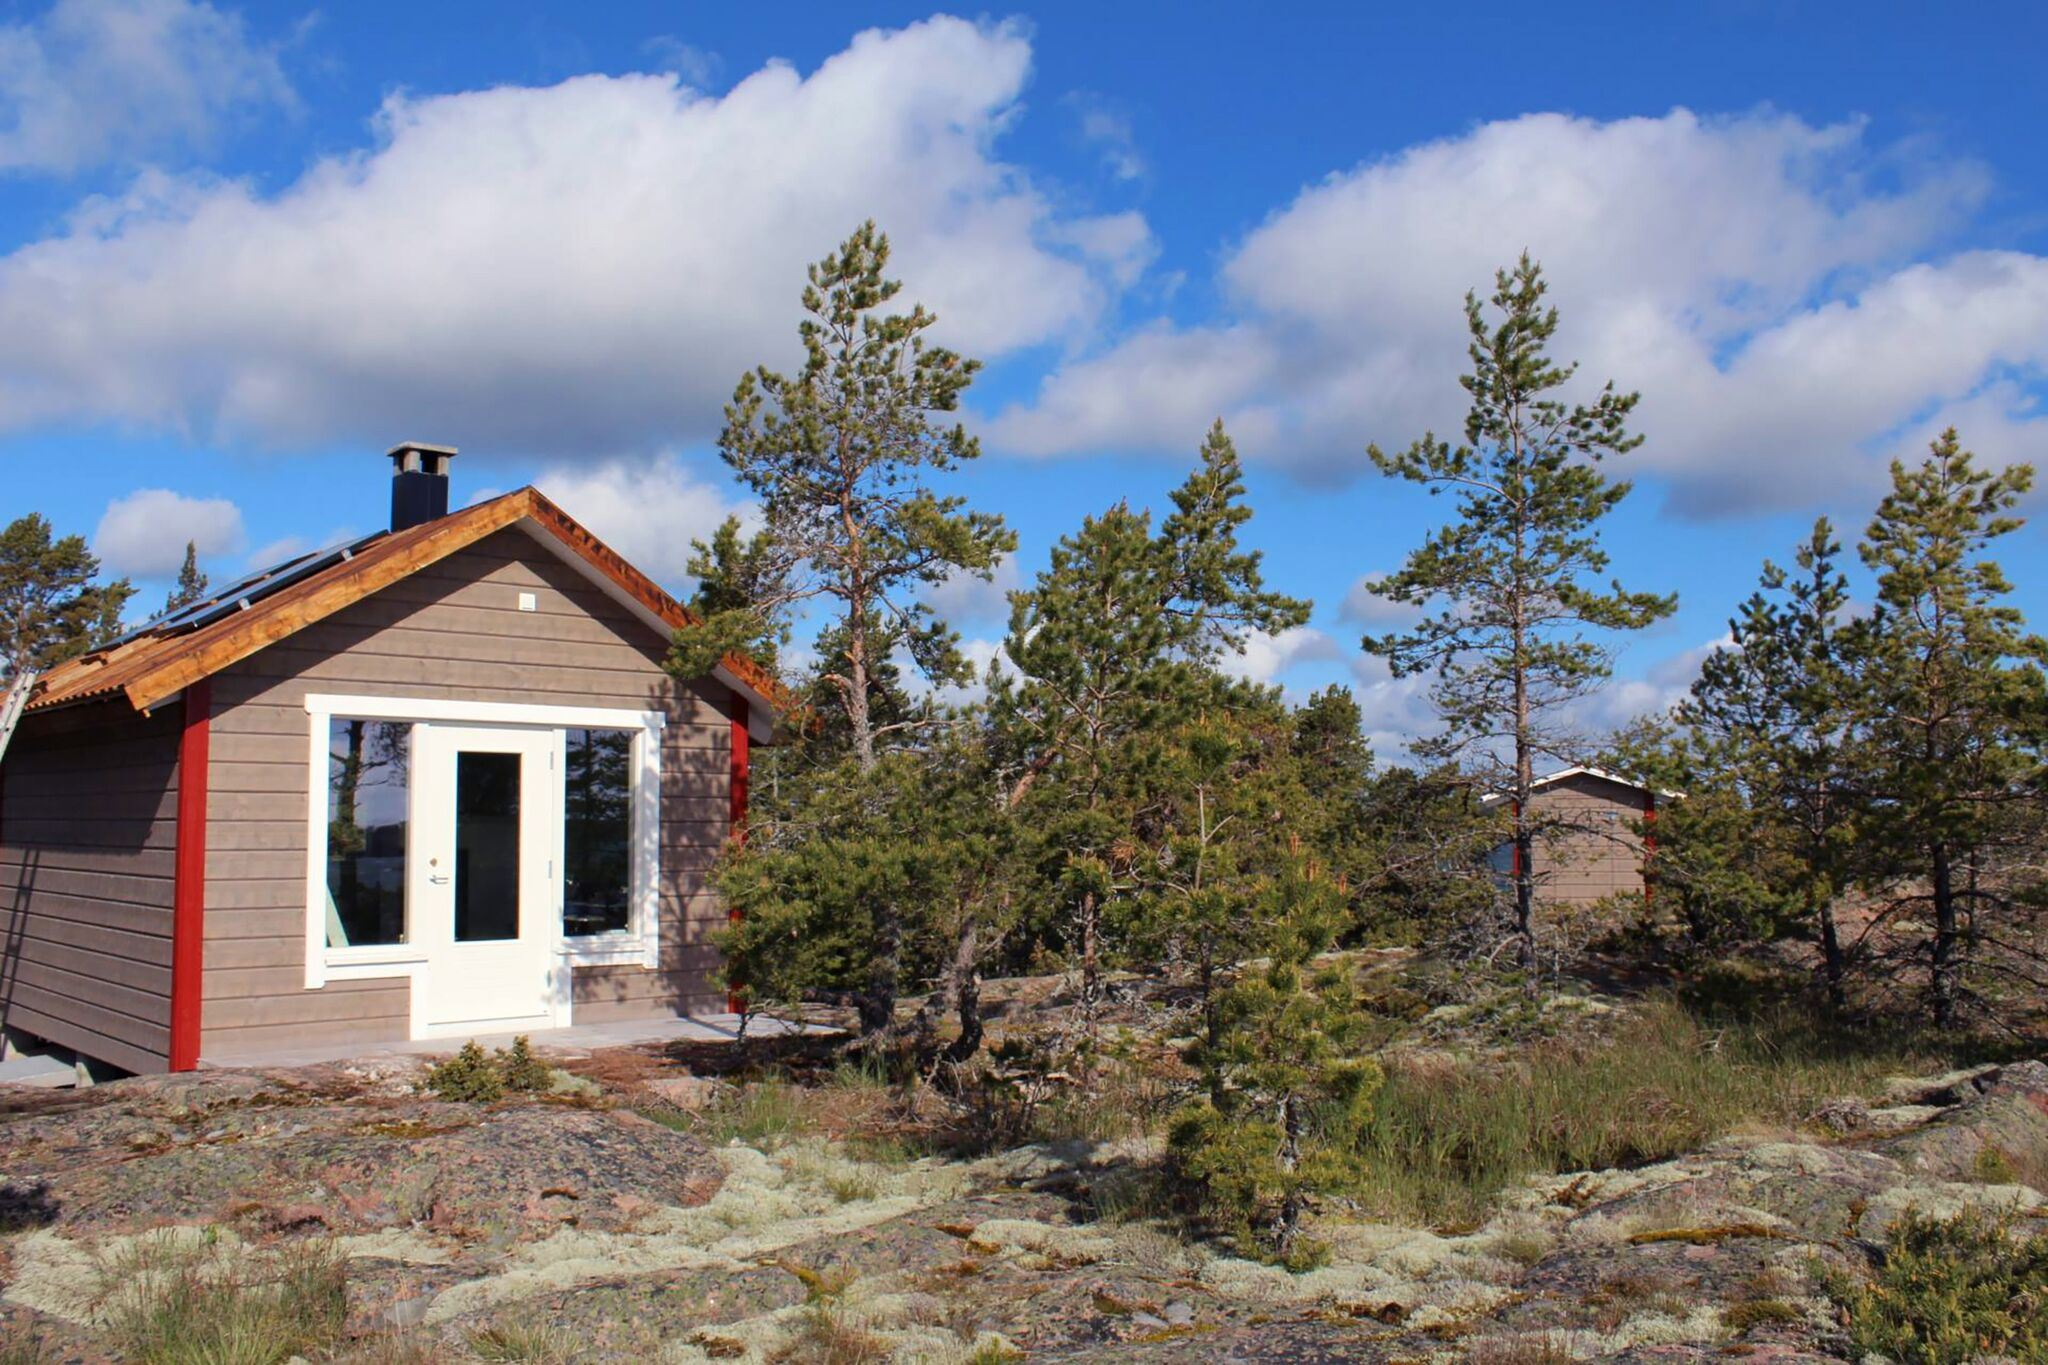 Sandösund Resort: Hermit Cottage on island Gyllenklobb